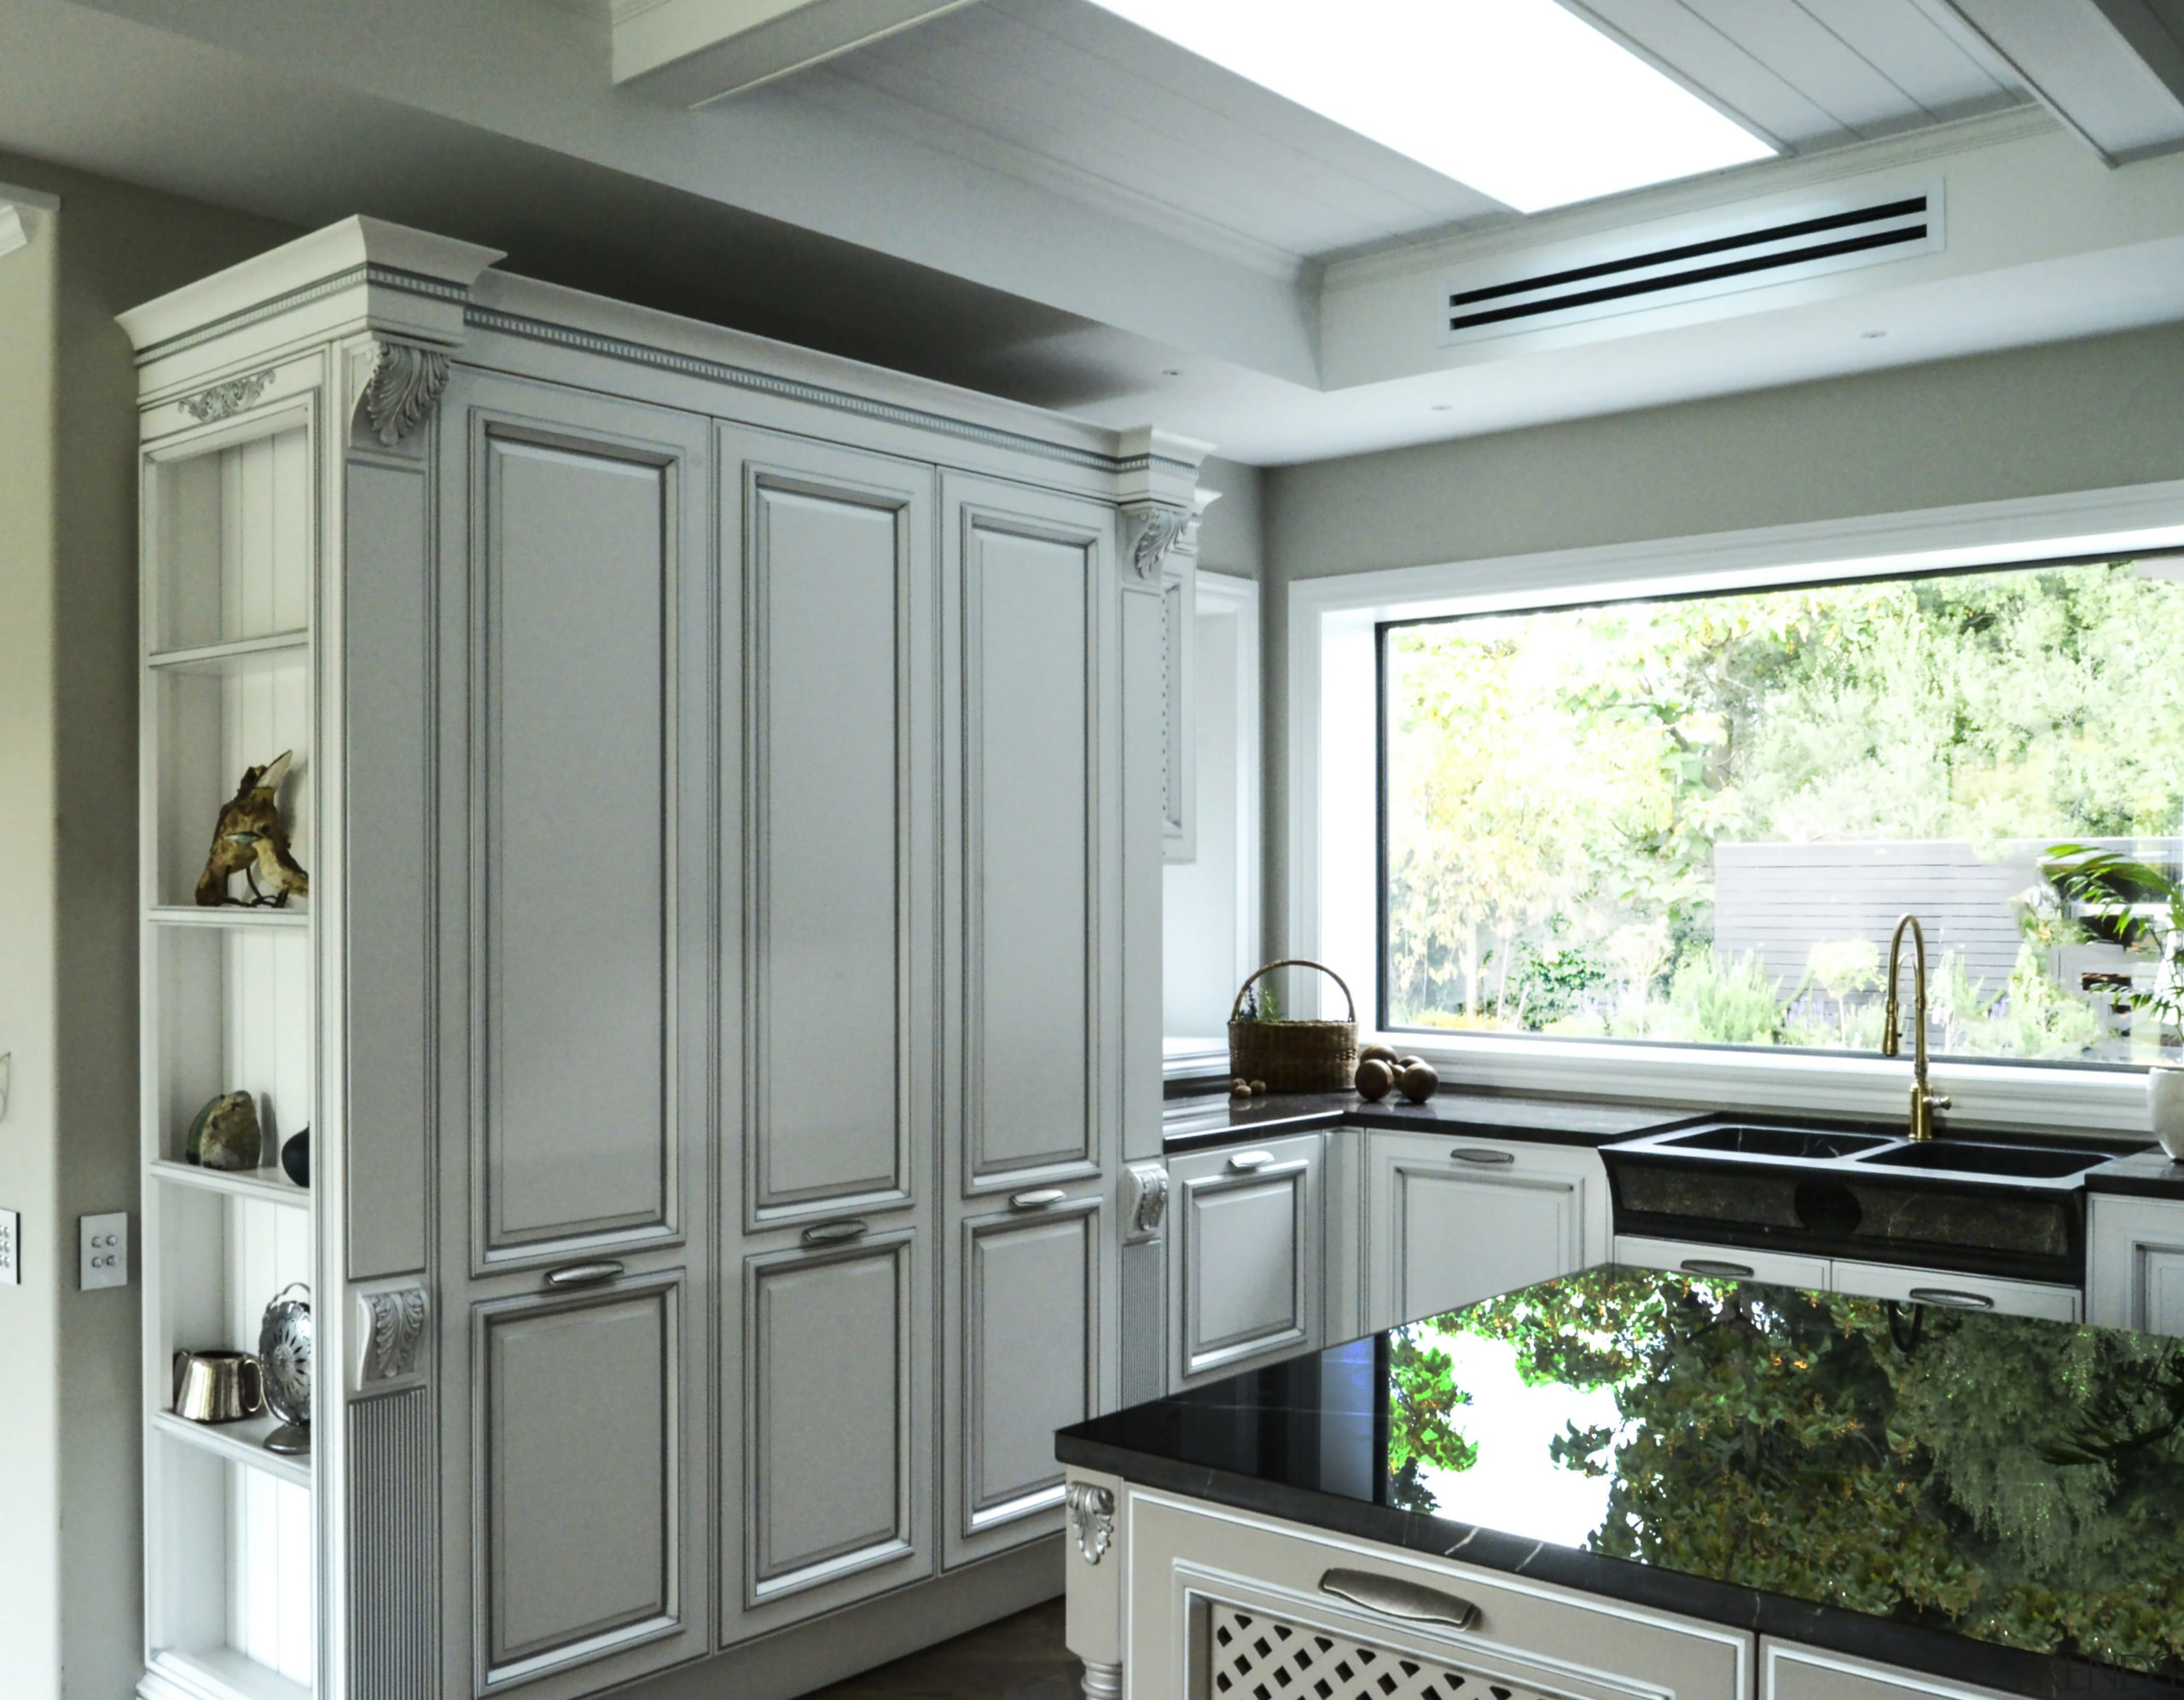 While this large kitchen\'s panelled cabinet style ...   Trends